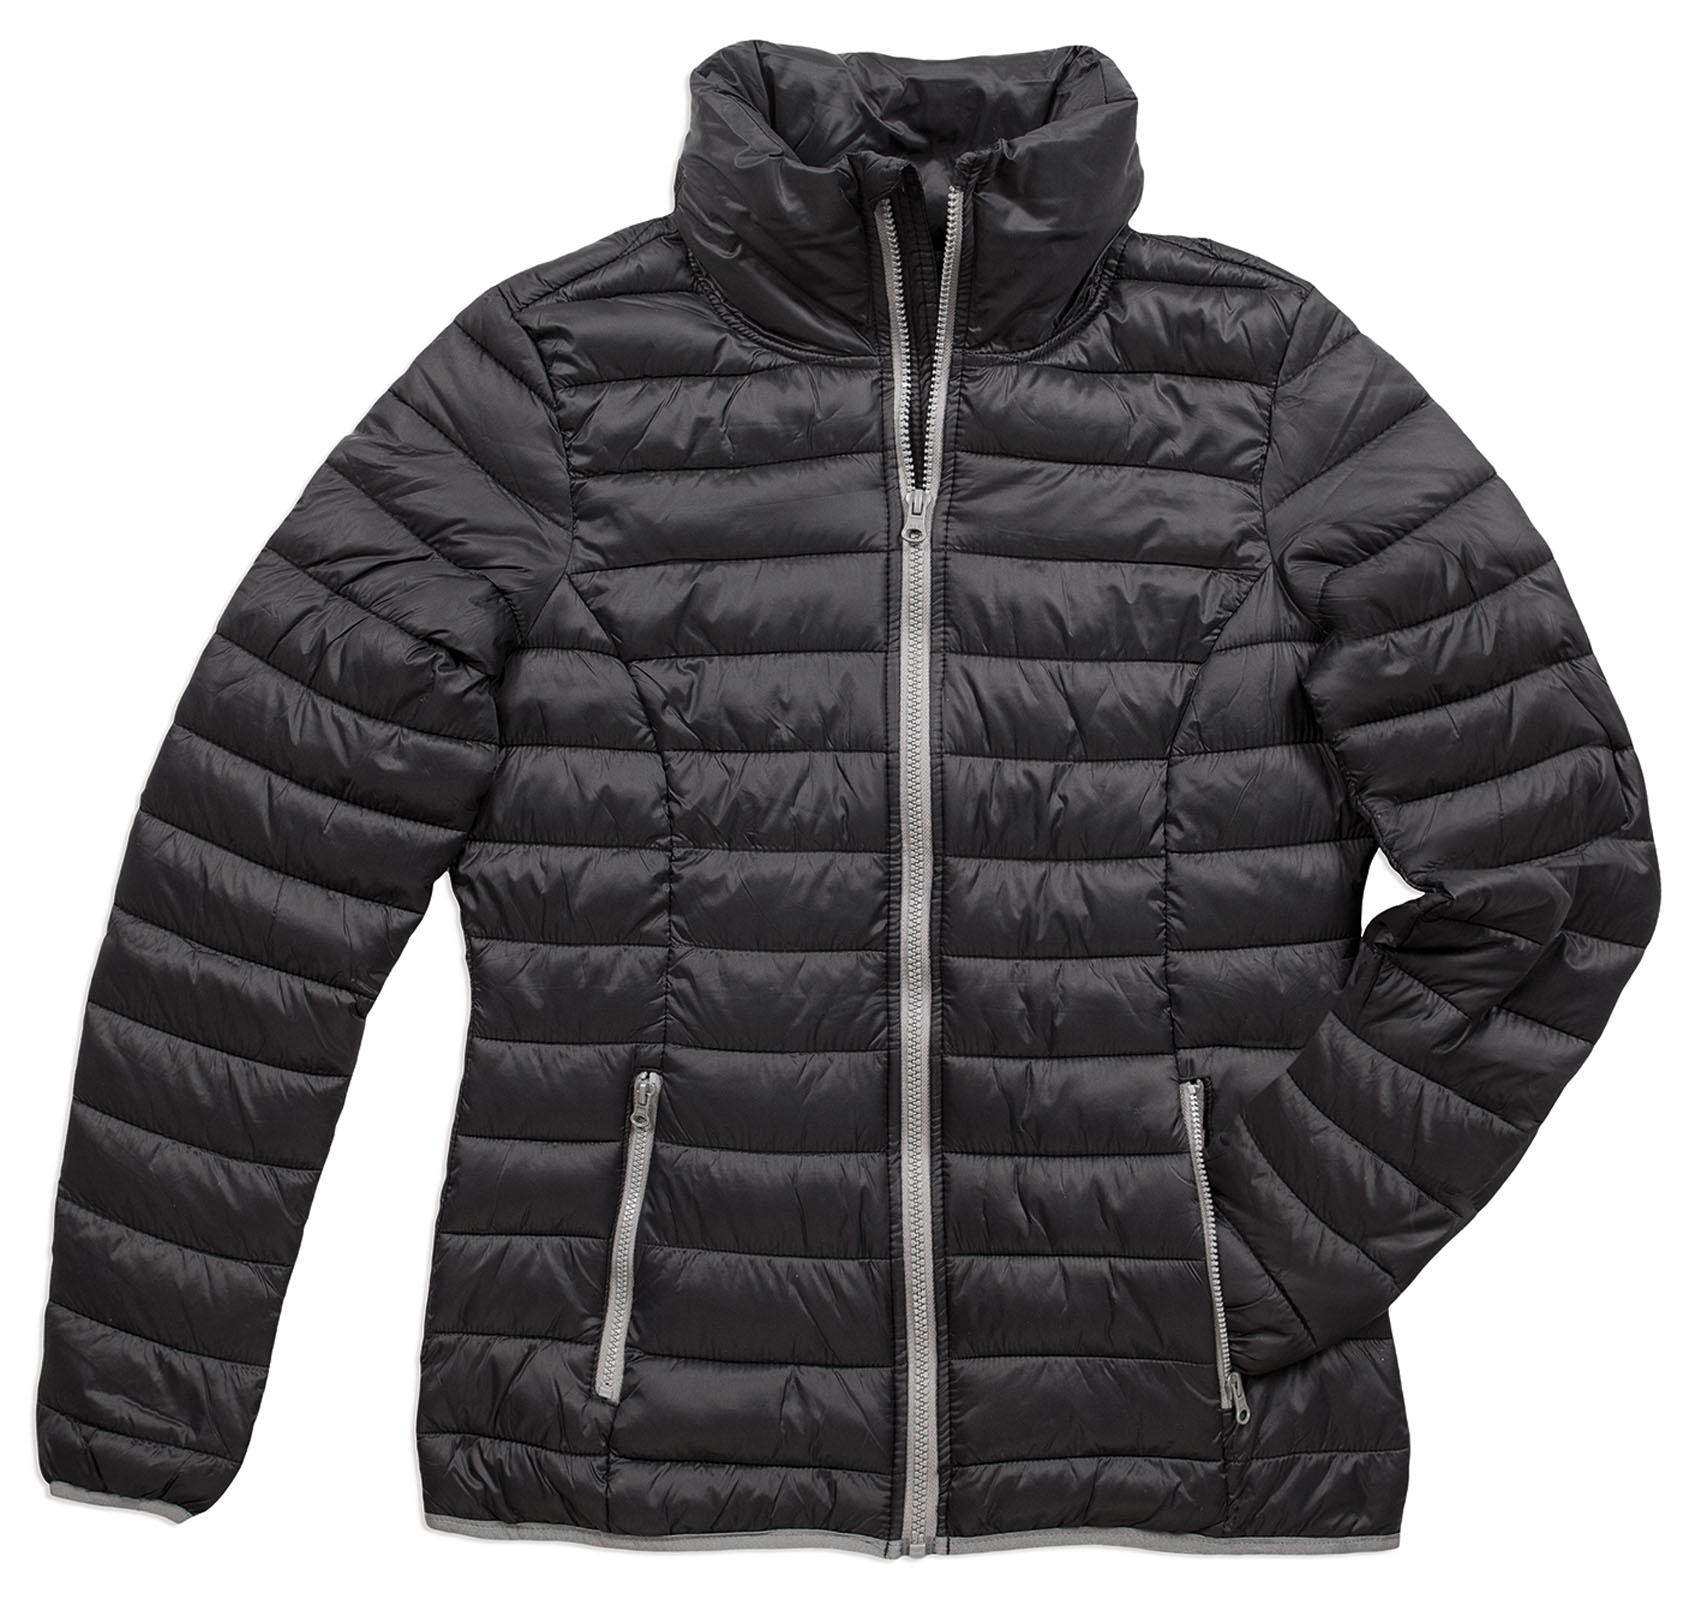 Stedman Padded Jacket Active for her